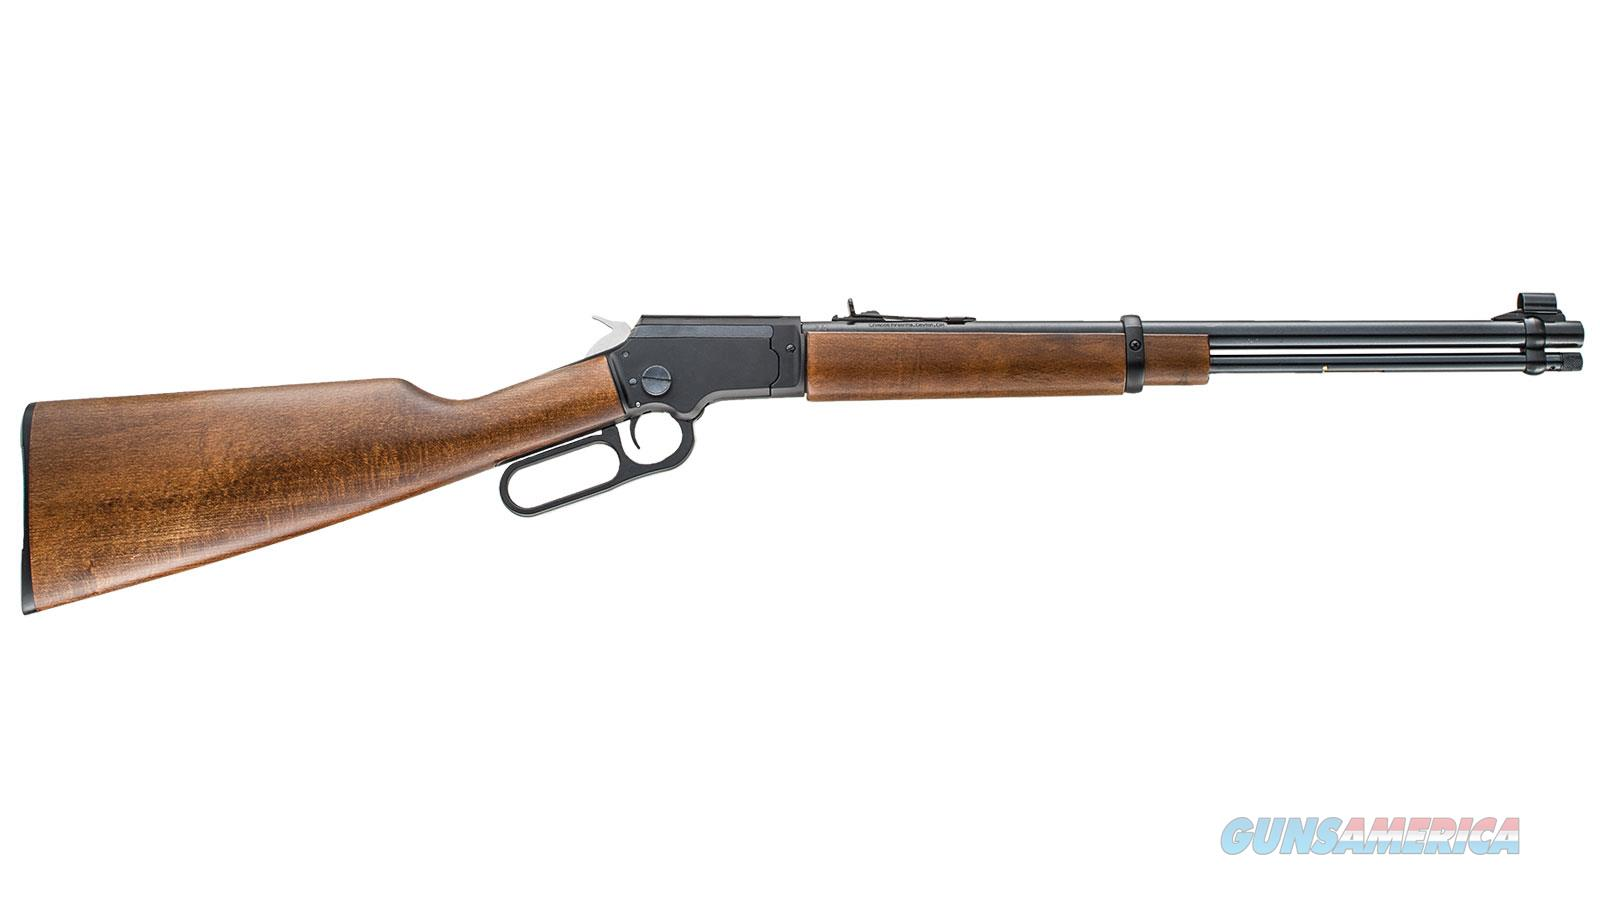 Chiappa Firearmsmks La322 Carbine 22Lr 18.5 Take Down Wood Stk 920.372  Guns > Rifles > C Misc Rifles